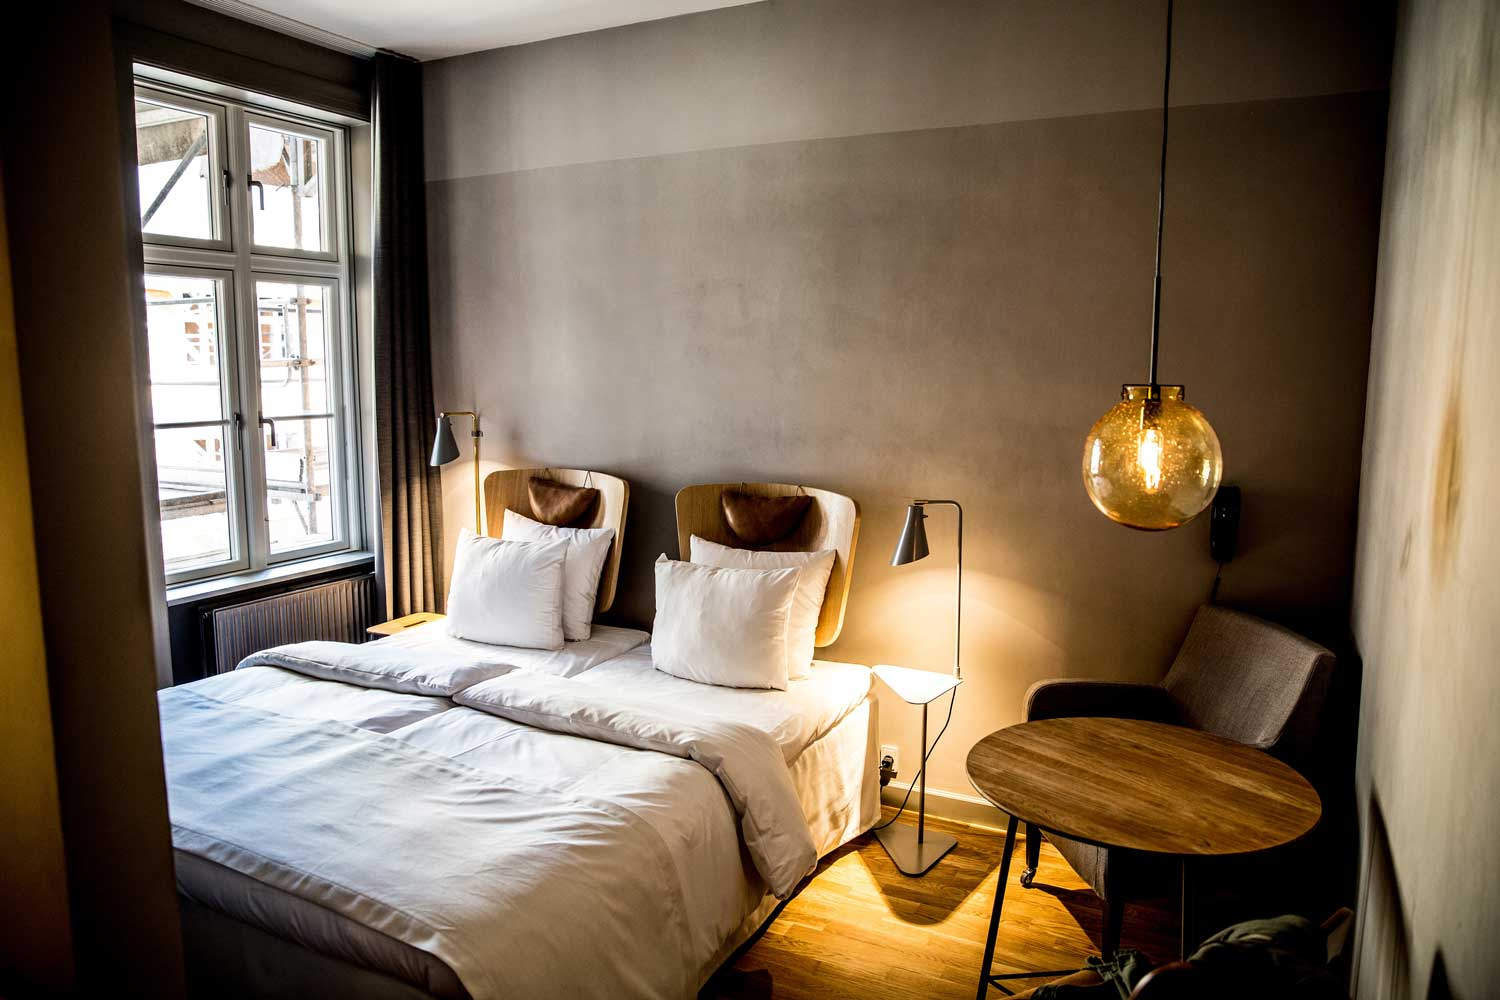 Hotel sp34 copenhagen denmark yellowtrace for Design hotel niederbayern